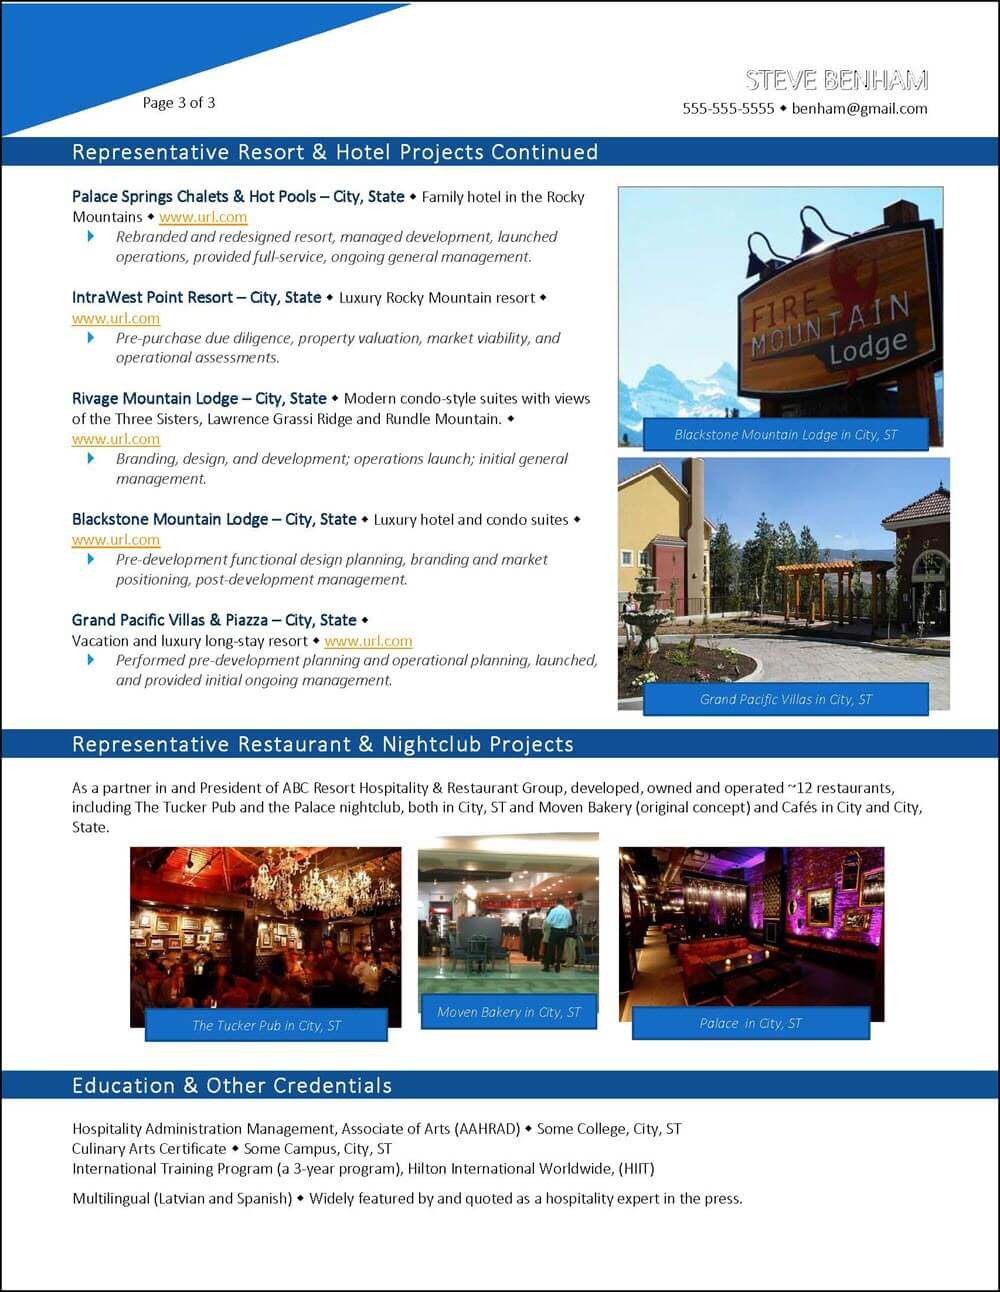 Example Hospitality Industry Executive Resume - page 3